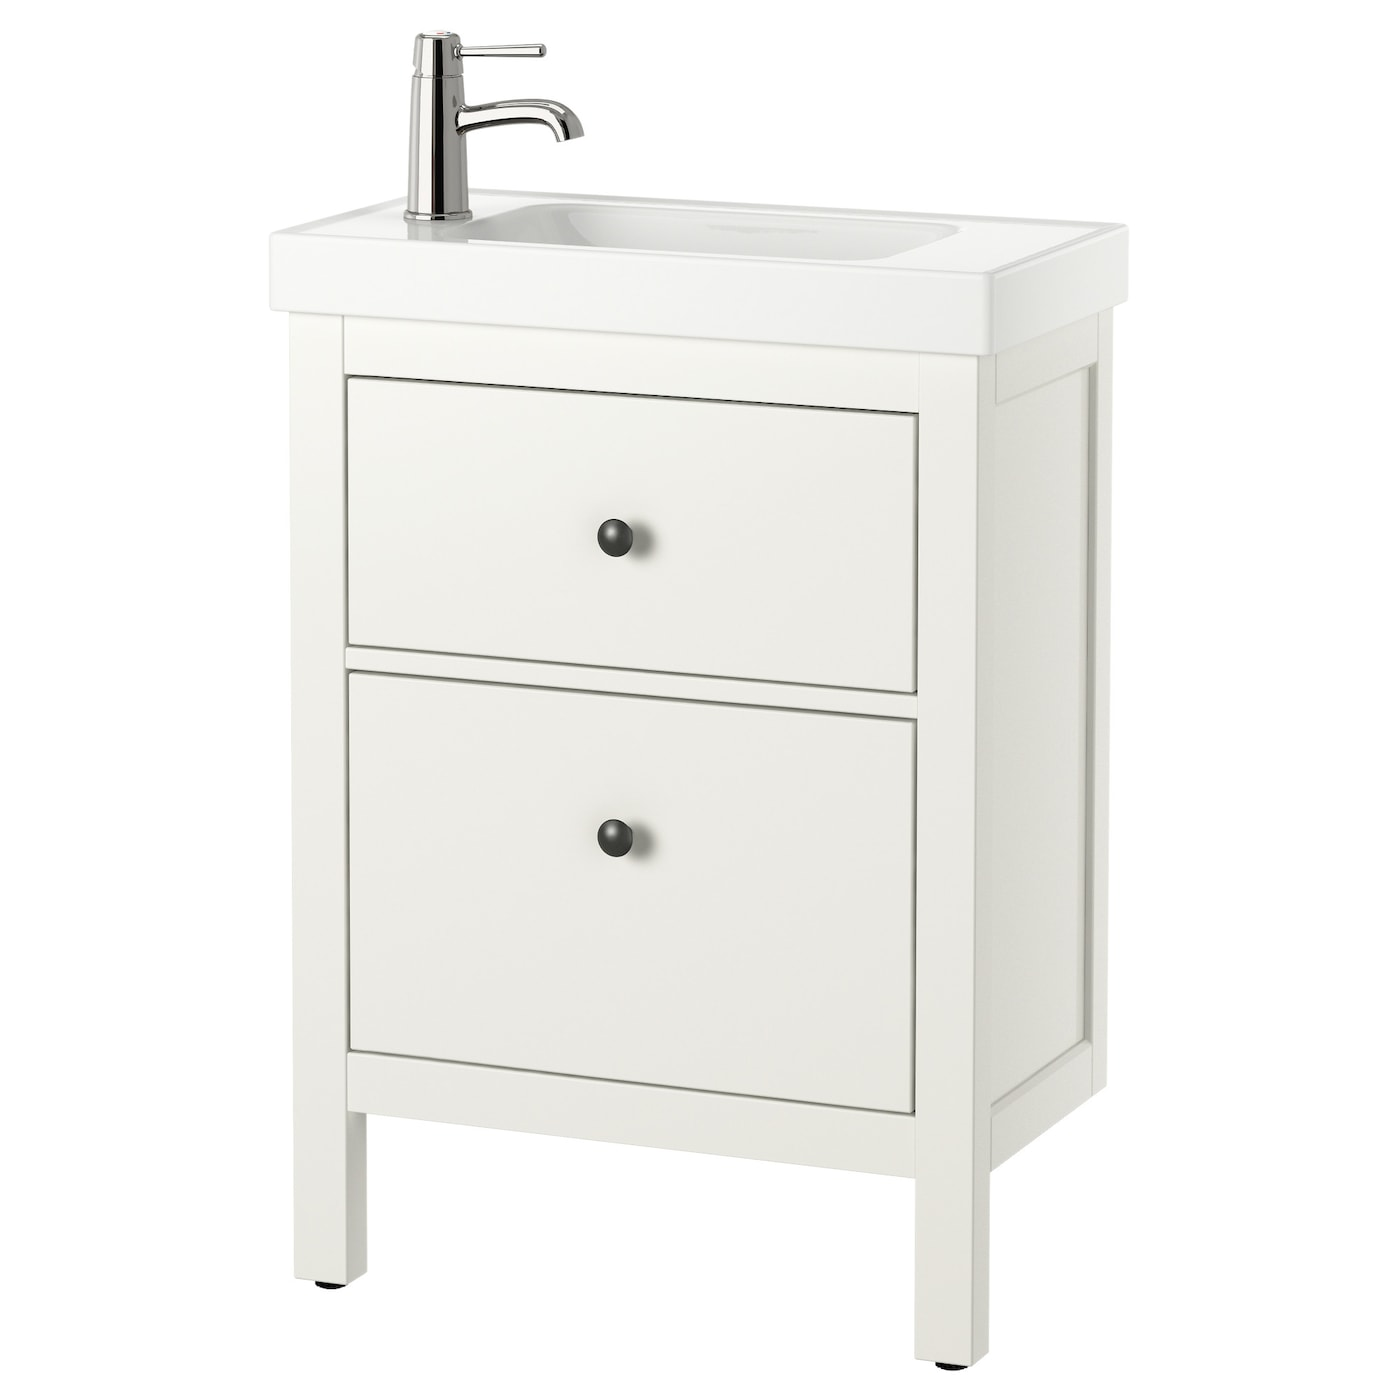 IKEA HEMNES/HAGAVIKEN wash-stand with 2 drawers